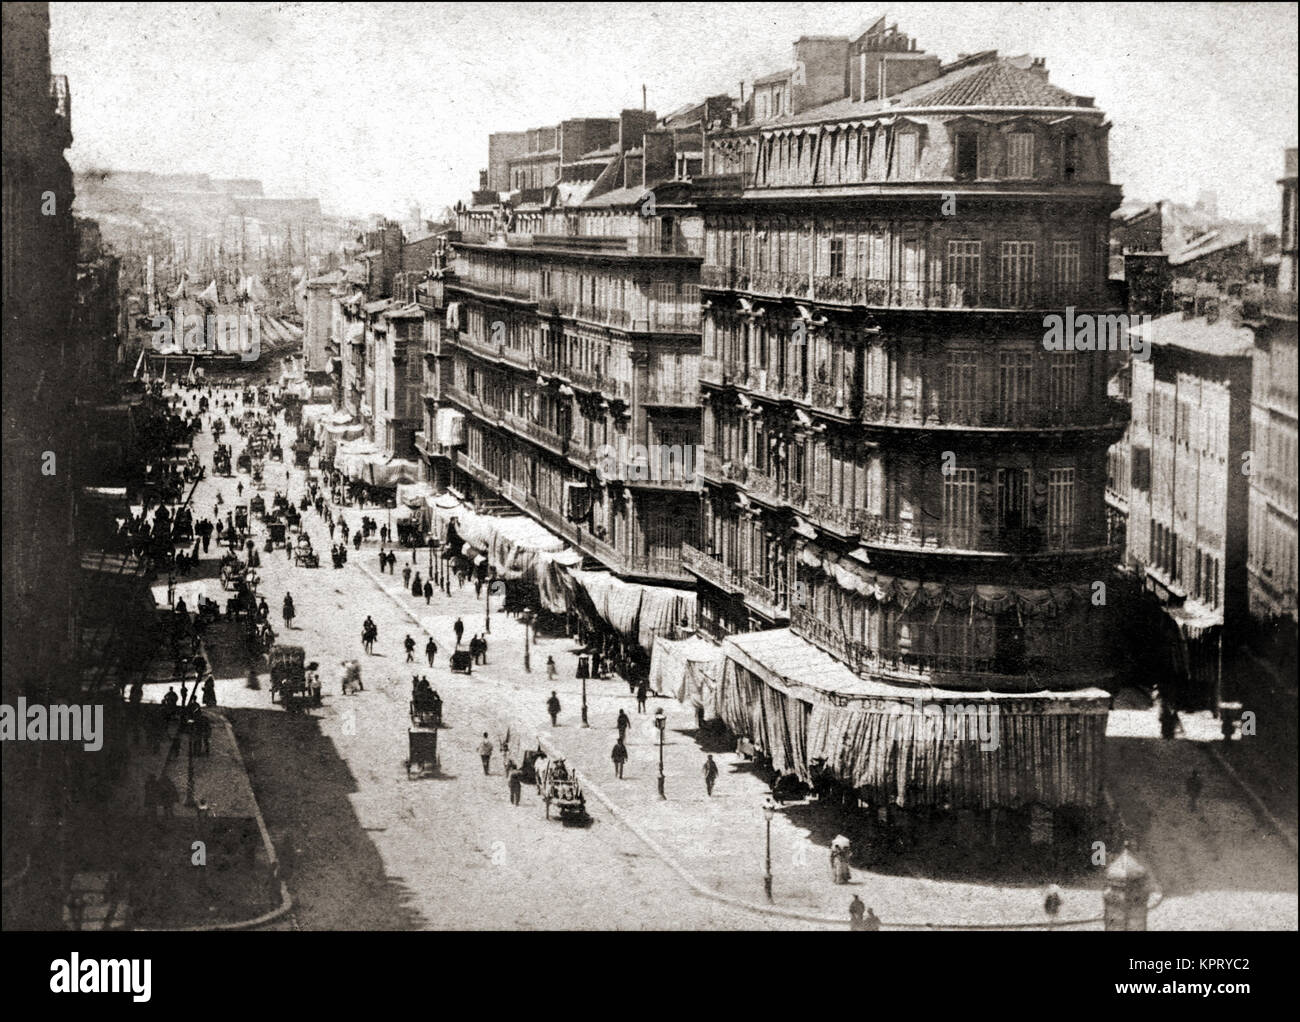 1860 and busy Mediterranean port in the South of France - Stock Image